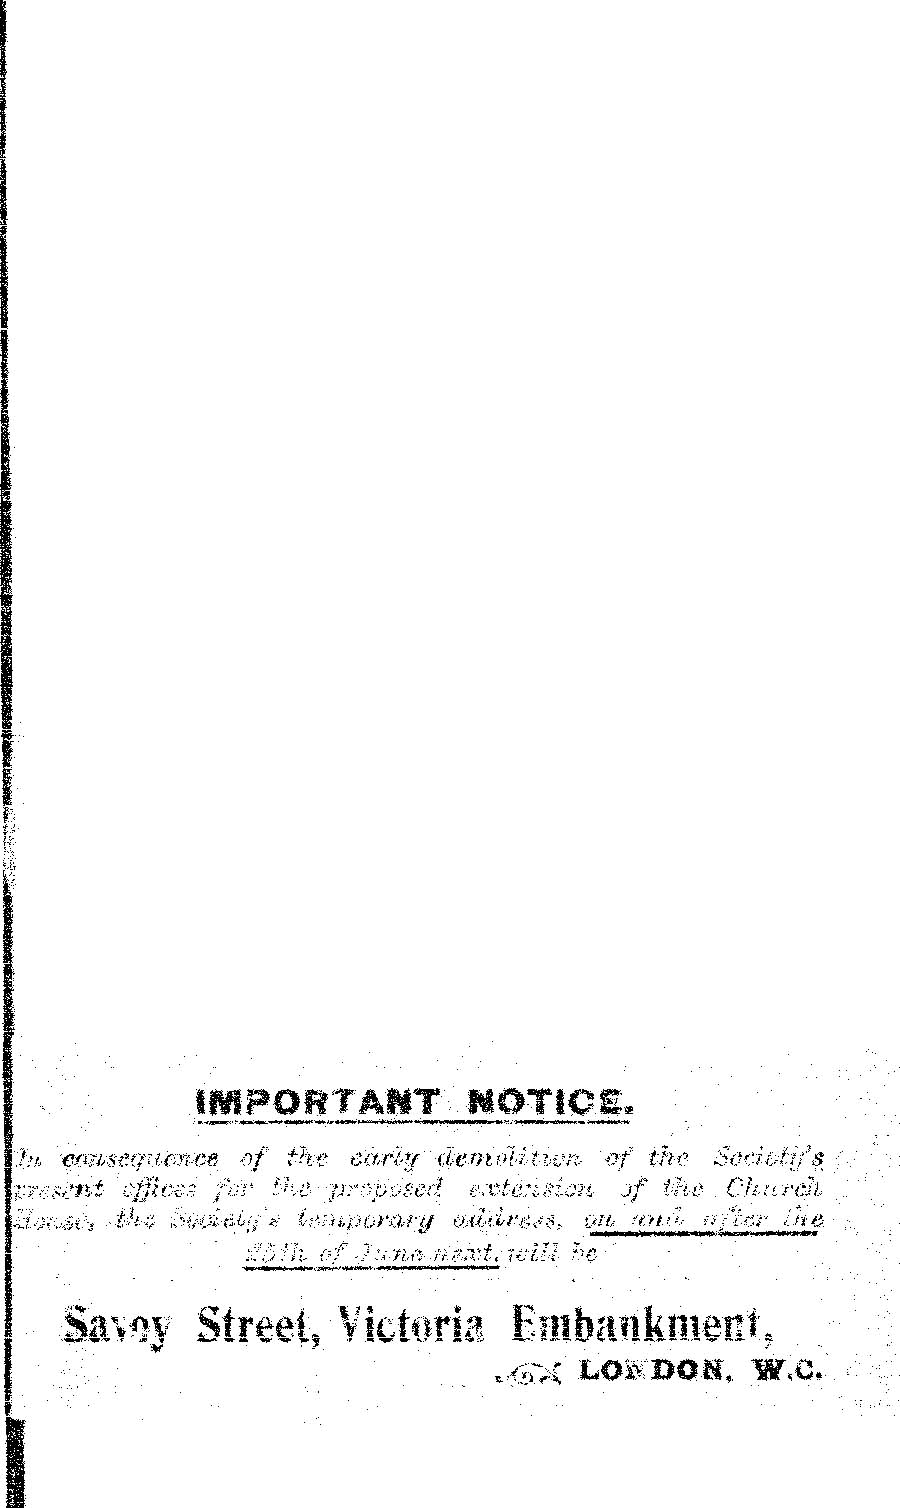 Annual Report 1898 - page 1